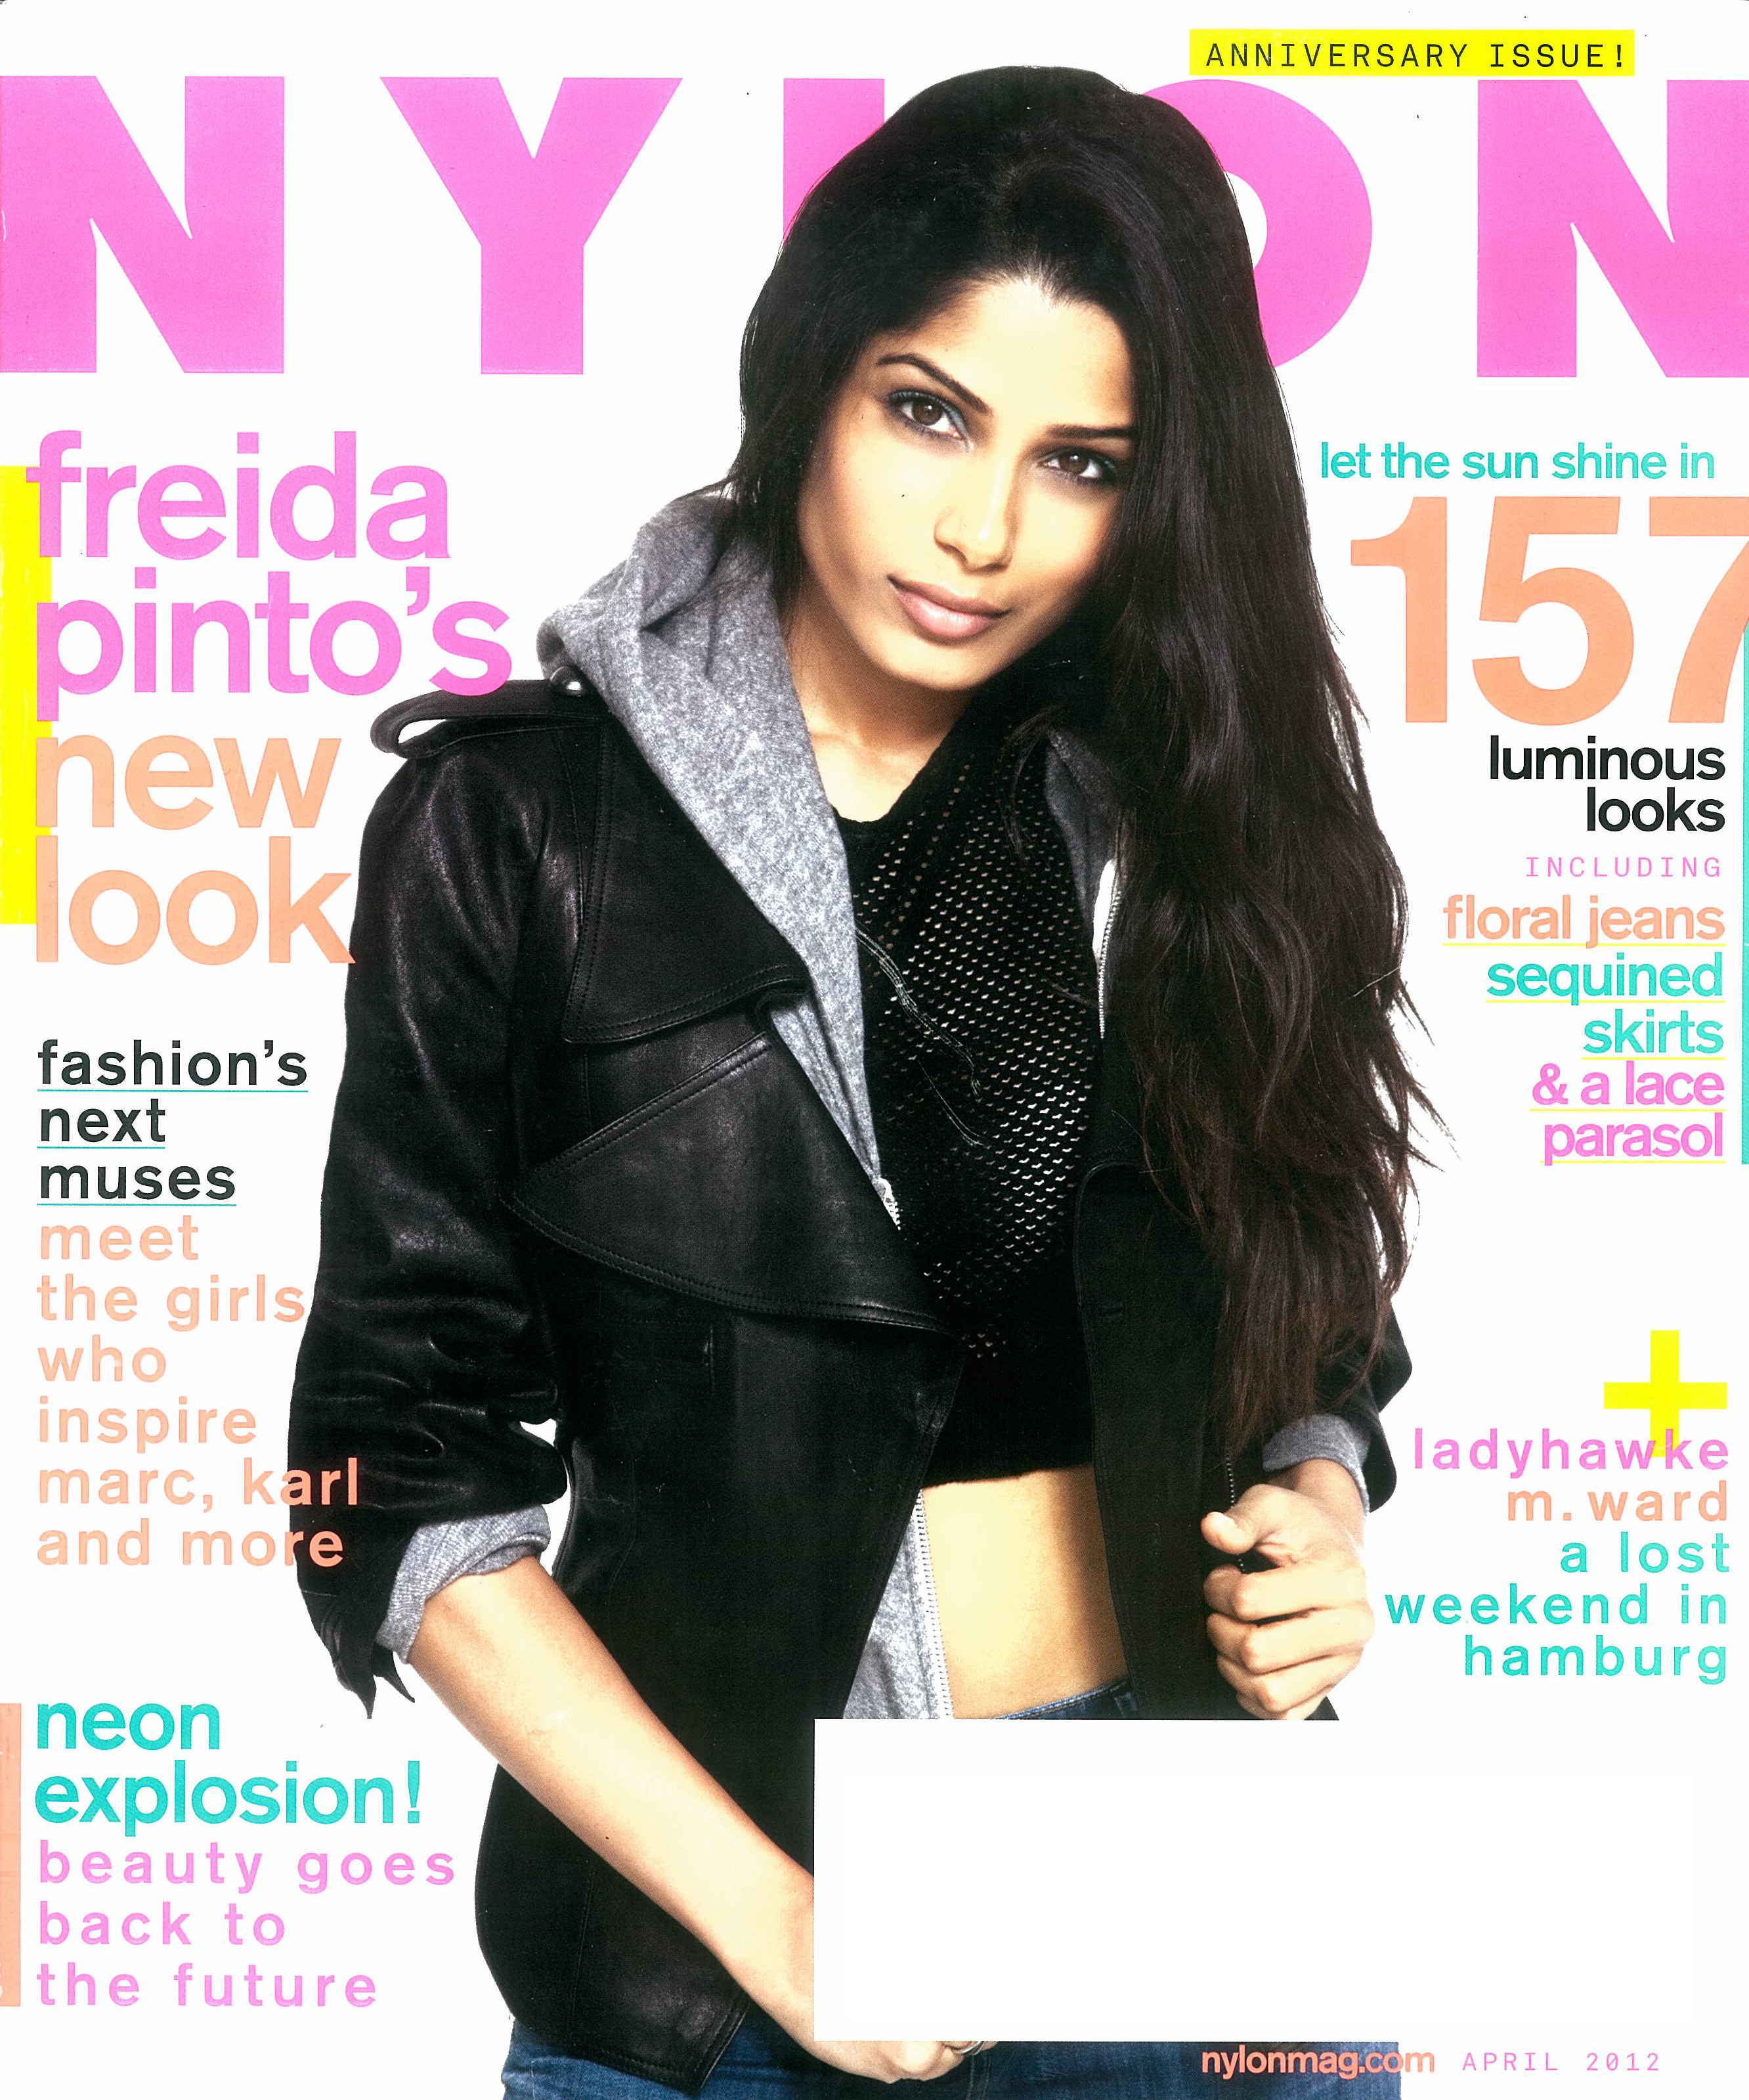 NYLON (APRIL) COVER